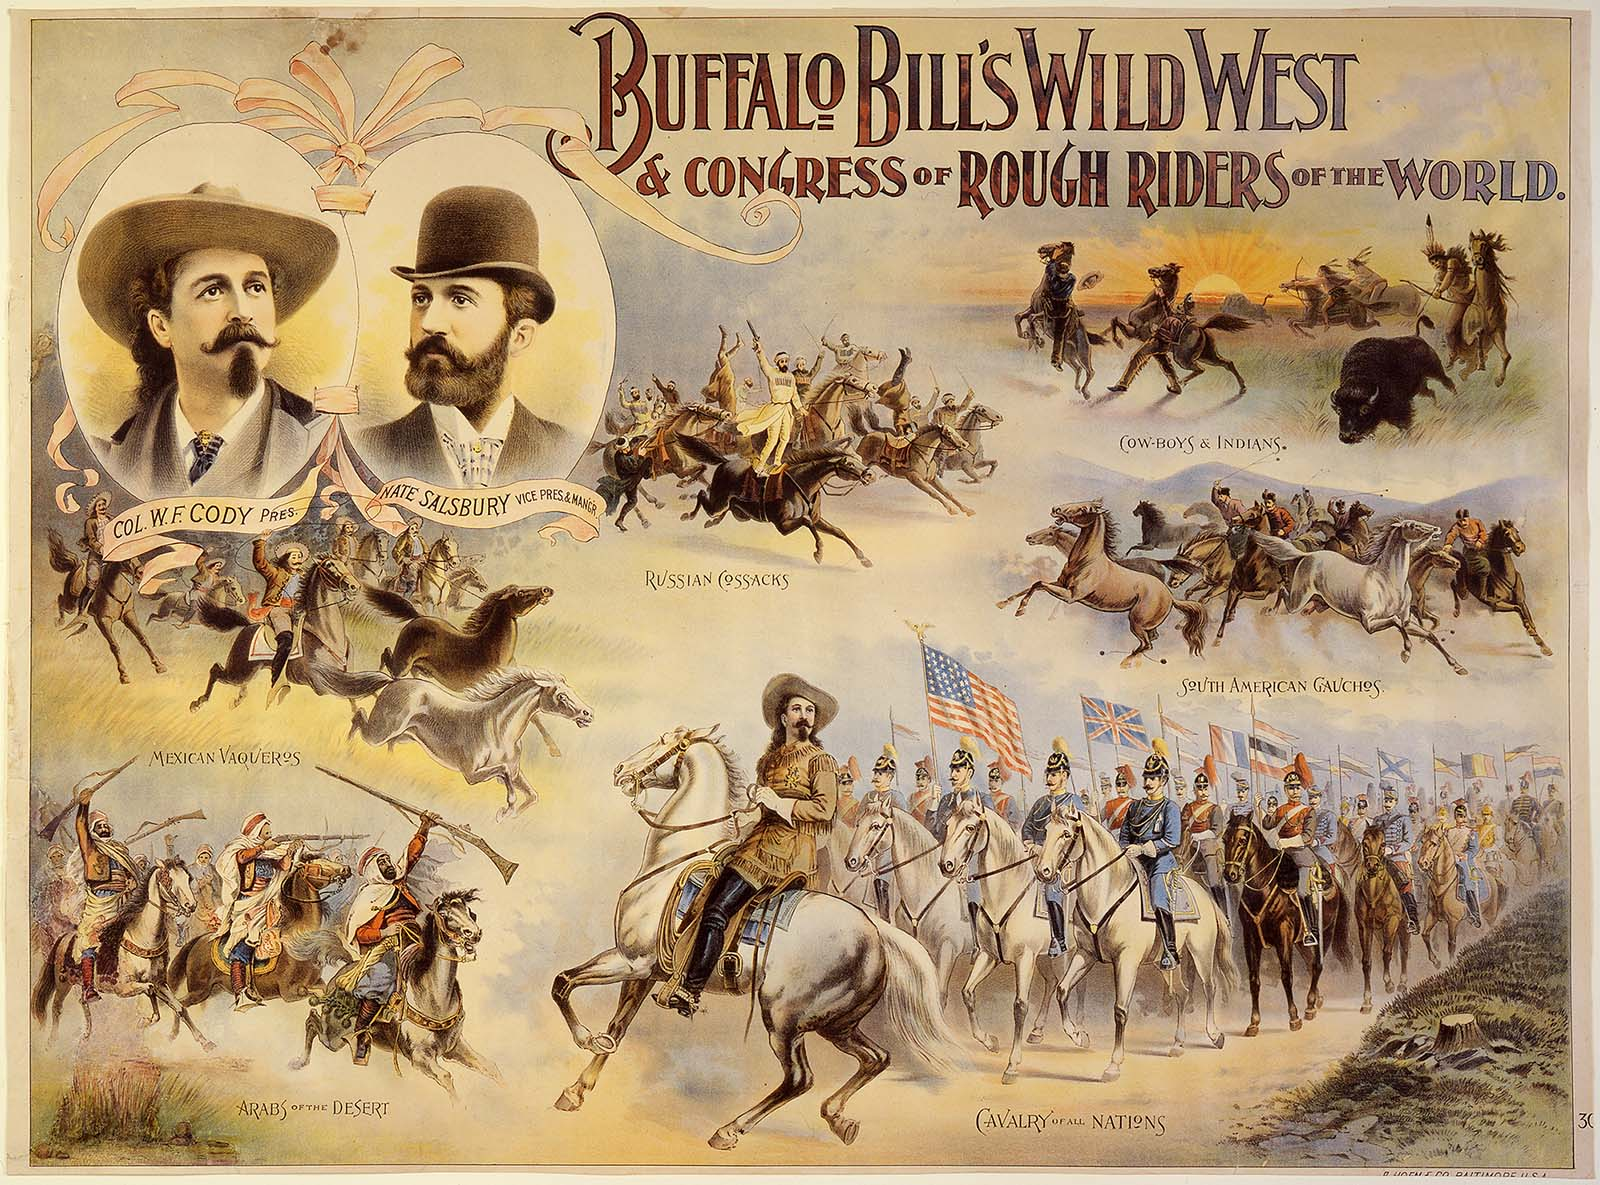 Buffalo's Bill Wild West poster, Congress of Rough Riders of the World, ca. 1895. Gift of The Coe Foundation. 1.69.170